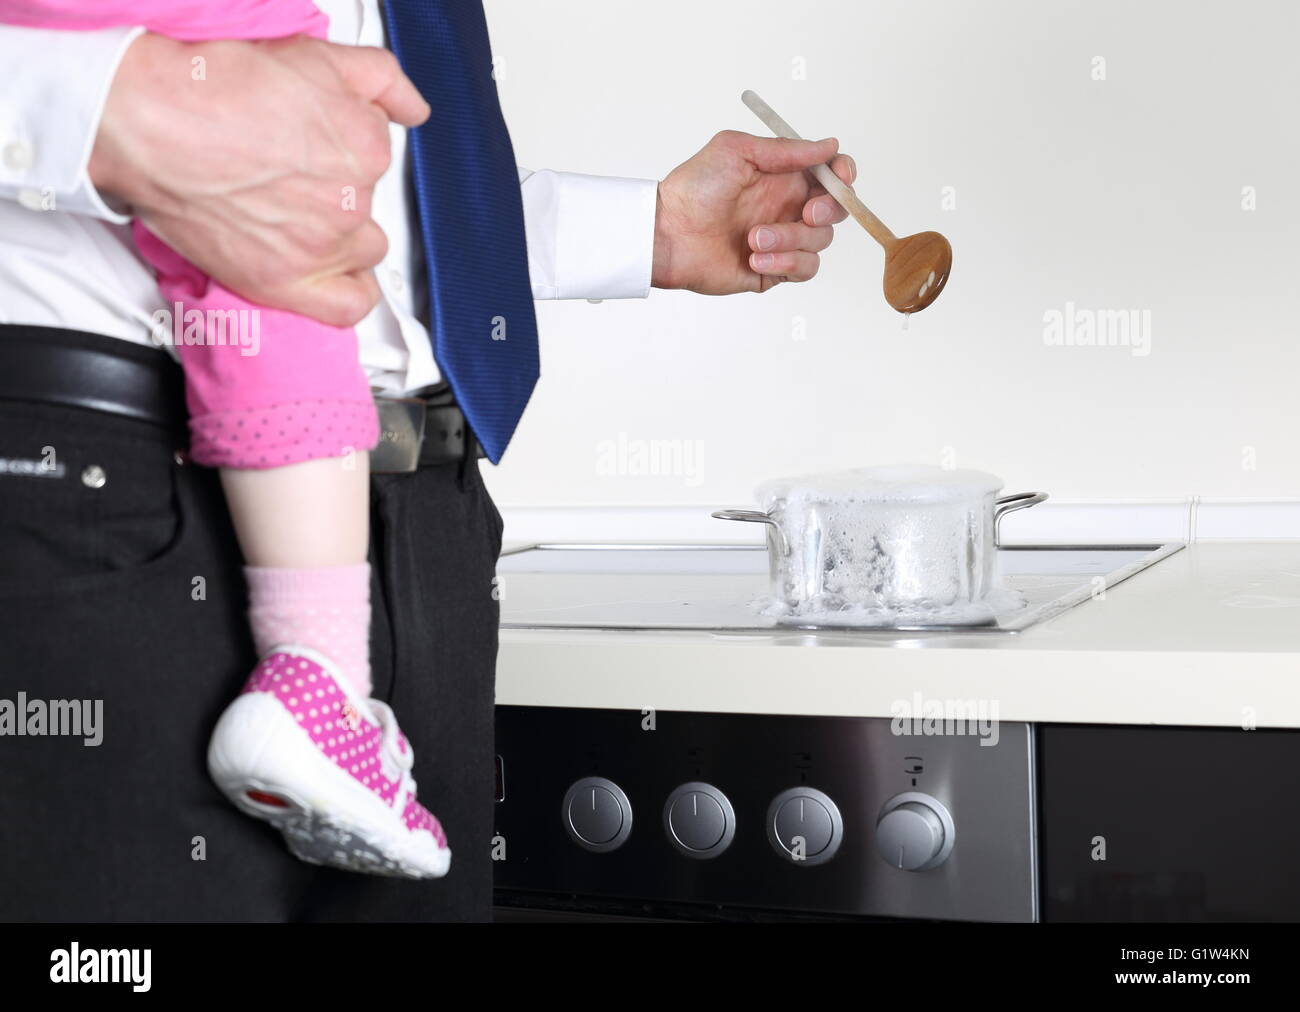 A Businessman cooking with Baby on arm - Stock Image